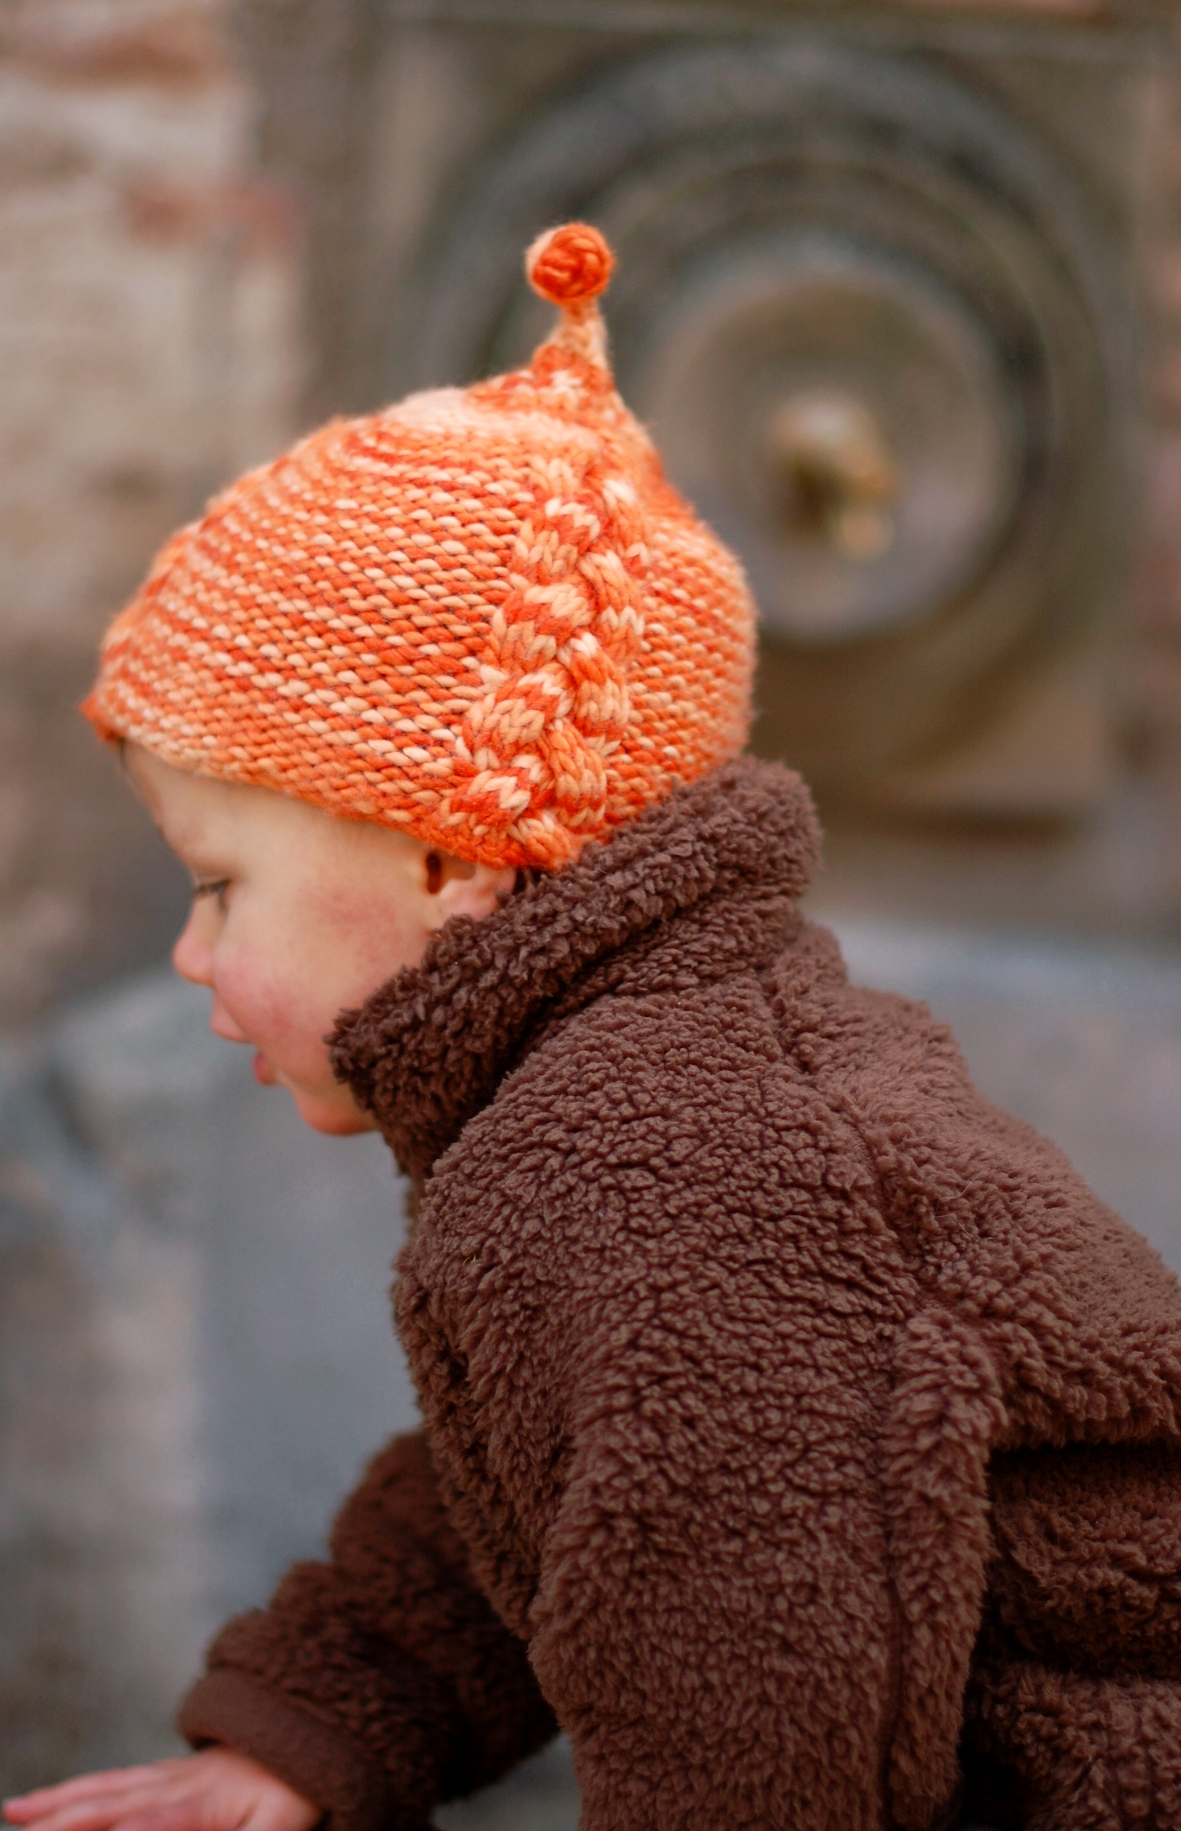 Lollie cabled pixie Hat knitting pattern